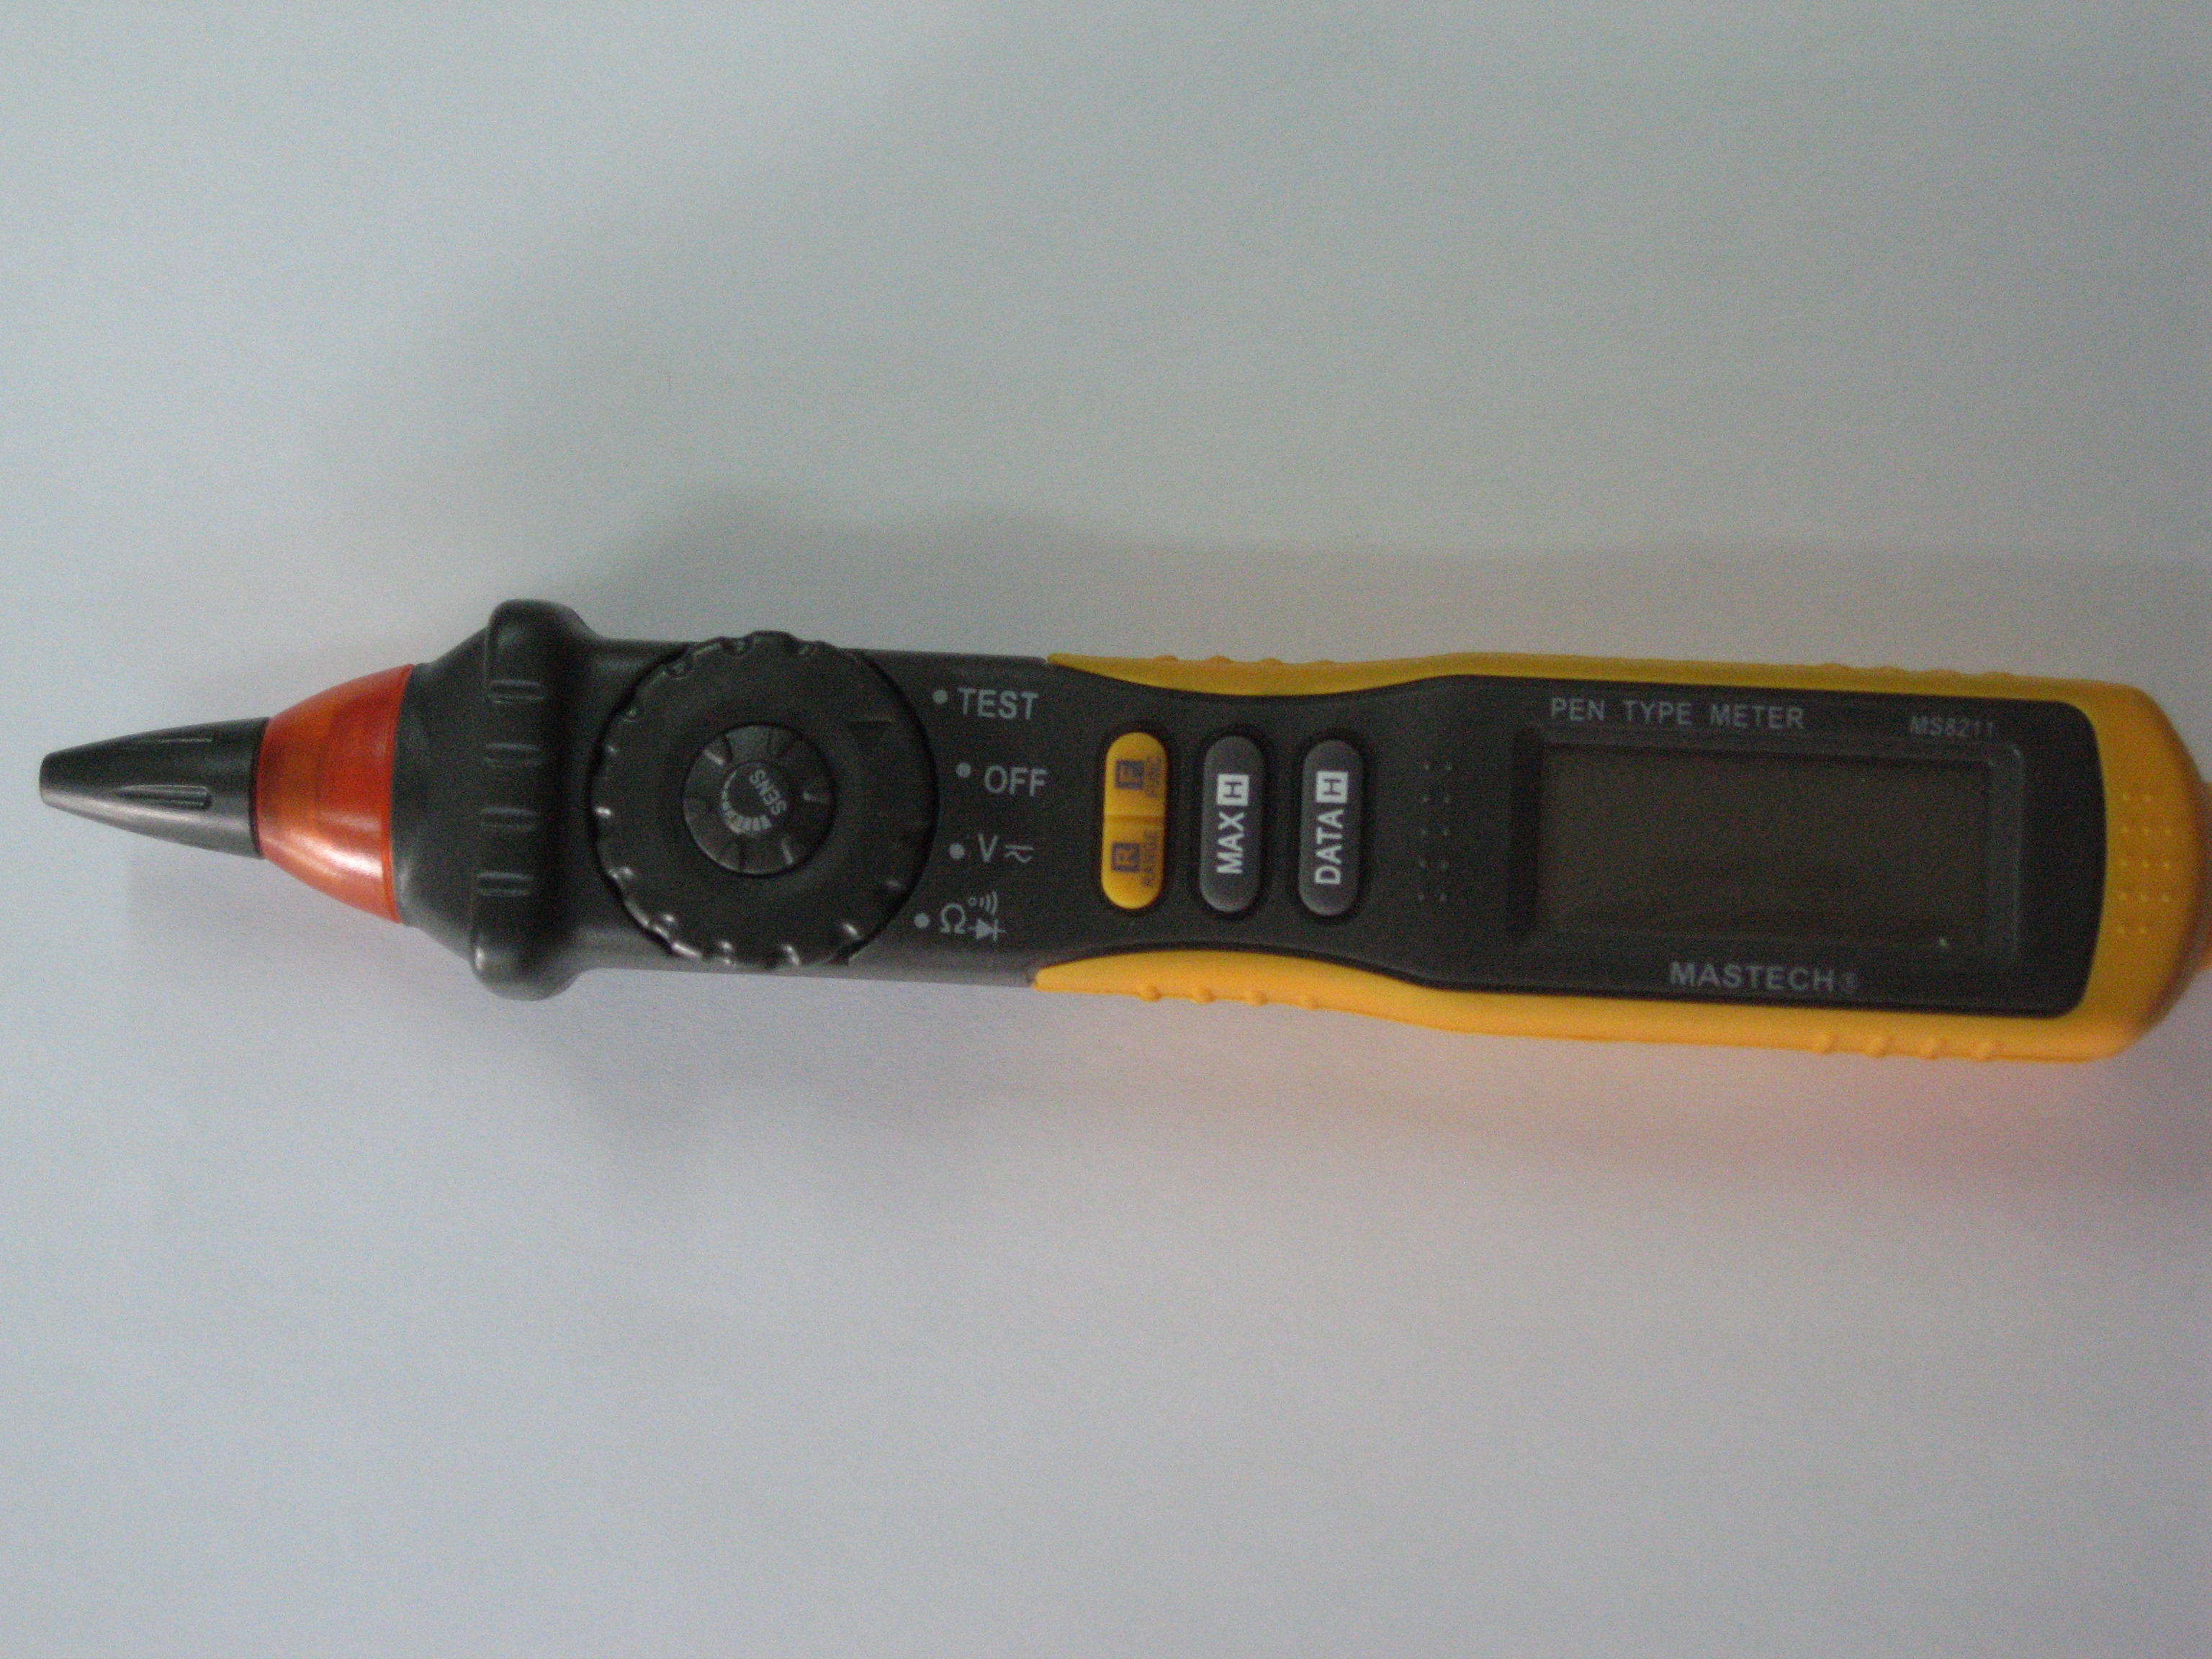 MS8211 MS8211 MASTECH Digital multimeter